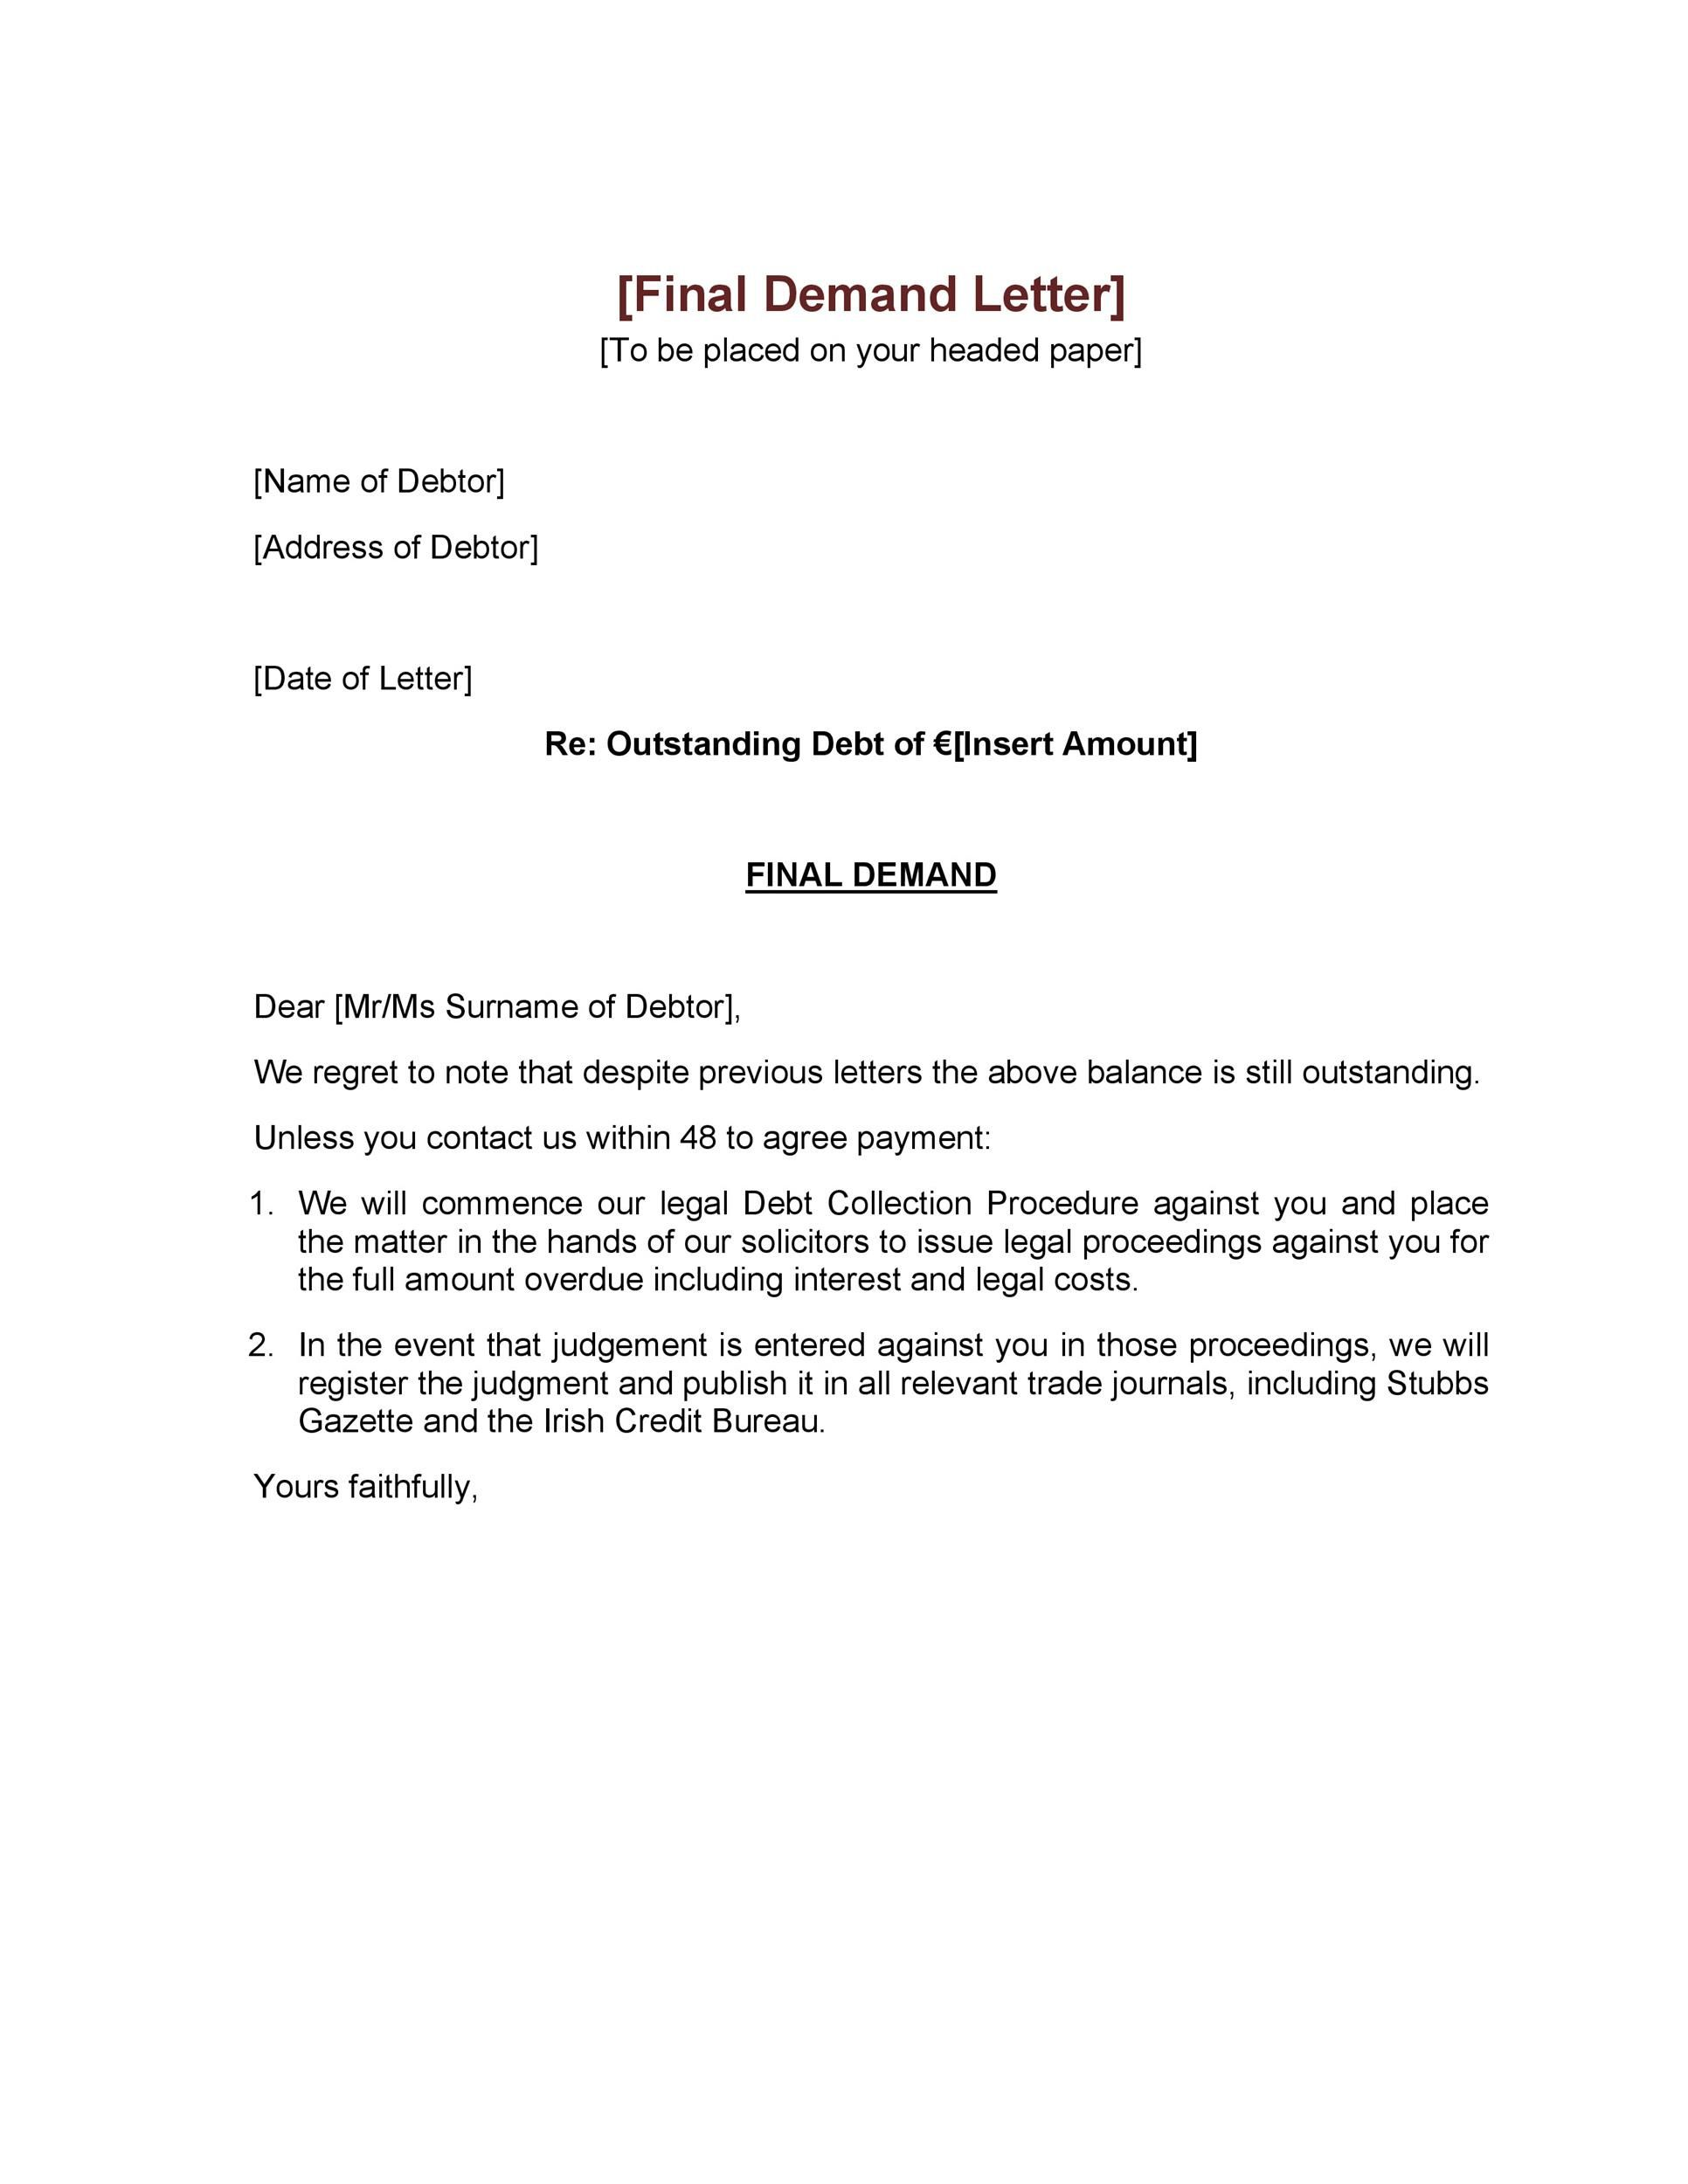 006 Astounding Final Payment Demand Letter Template Inspiration  For UkFull